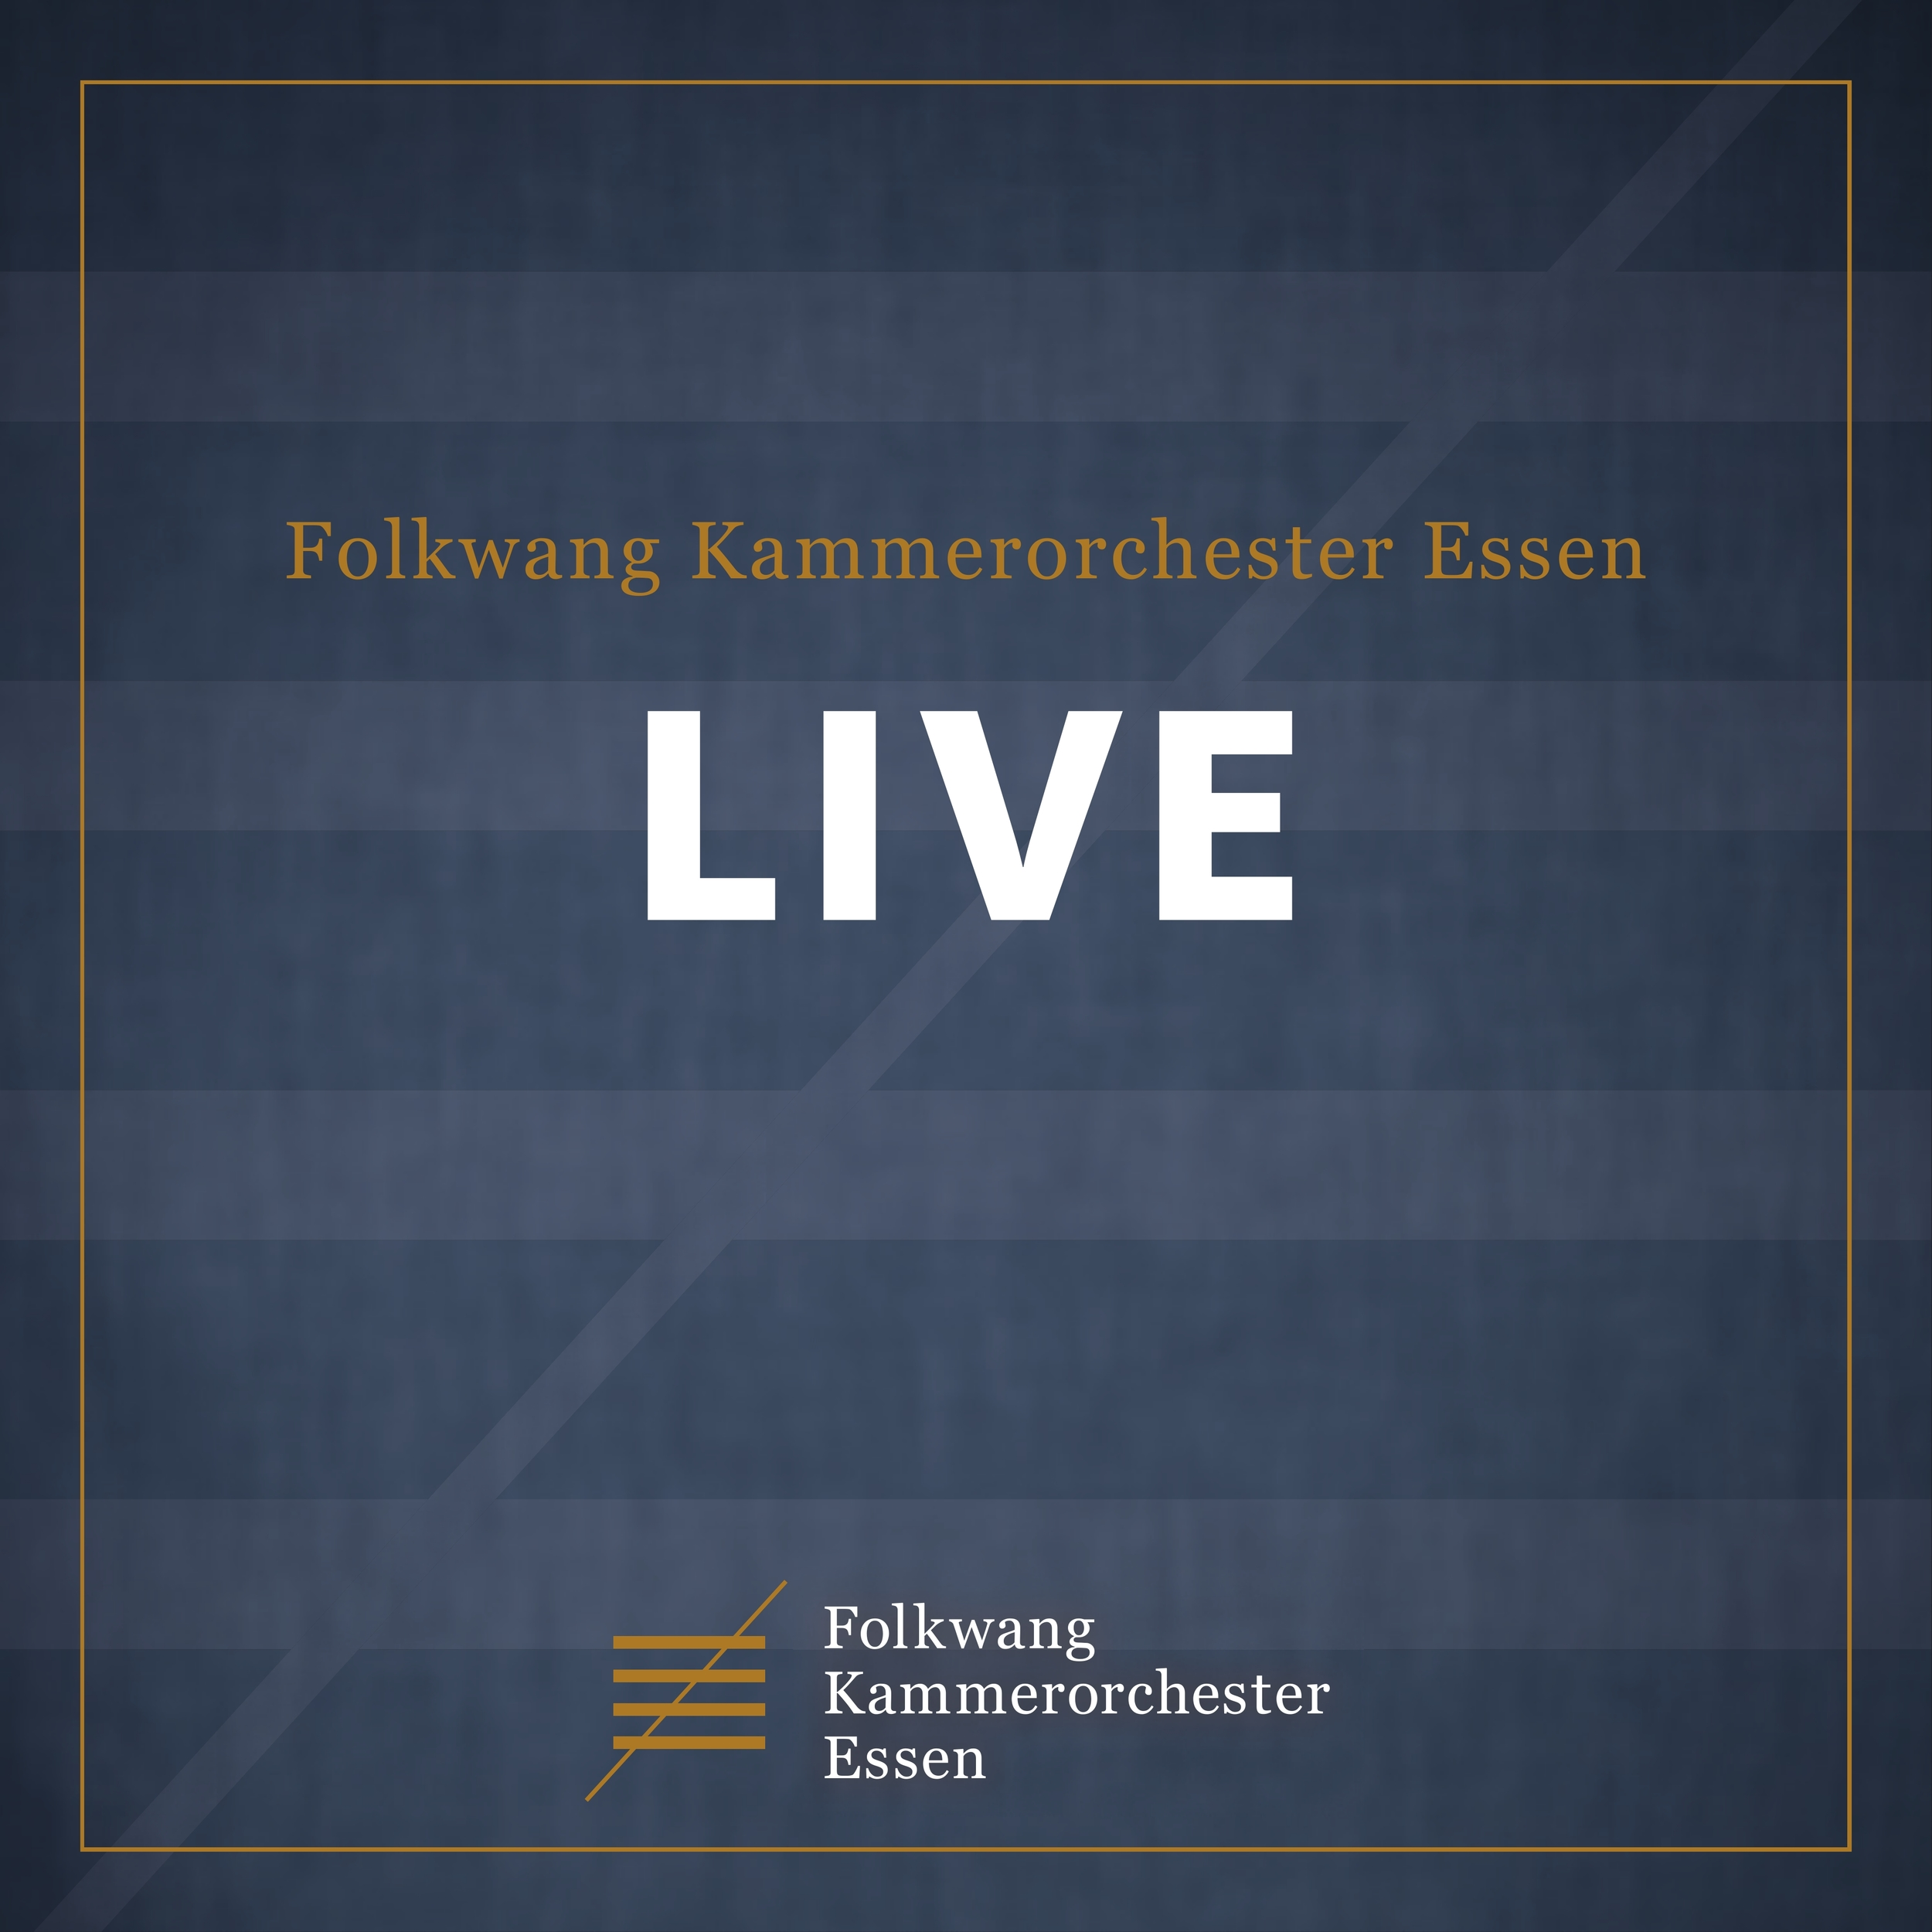 Concert to Go - Folkwang Kammerorchester